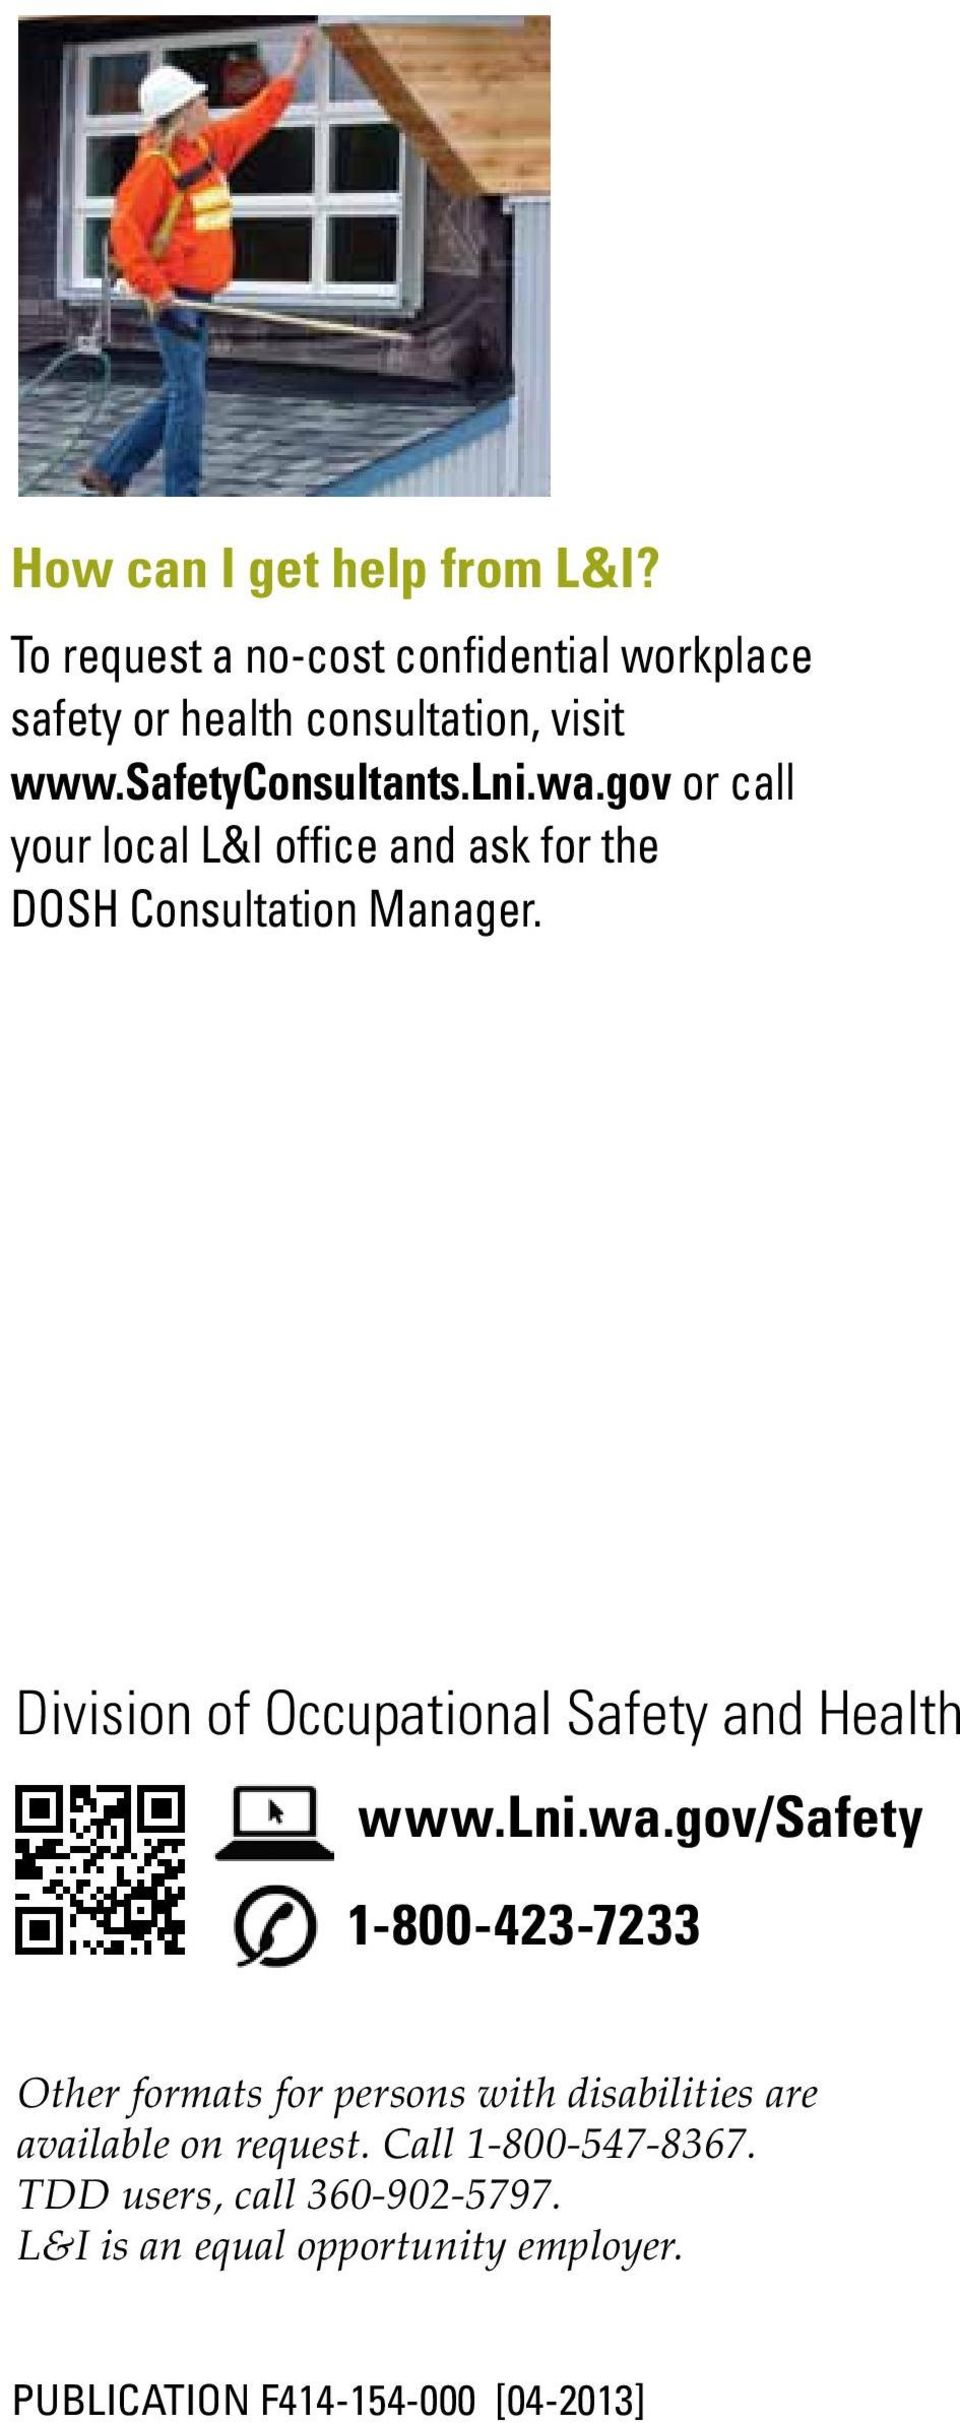 Division of Occupational Safety and Health www.lni.wa.